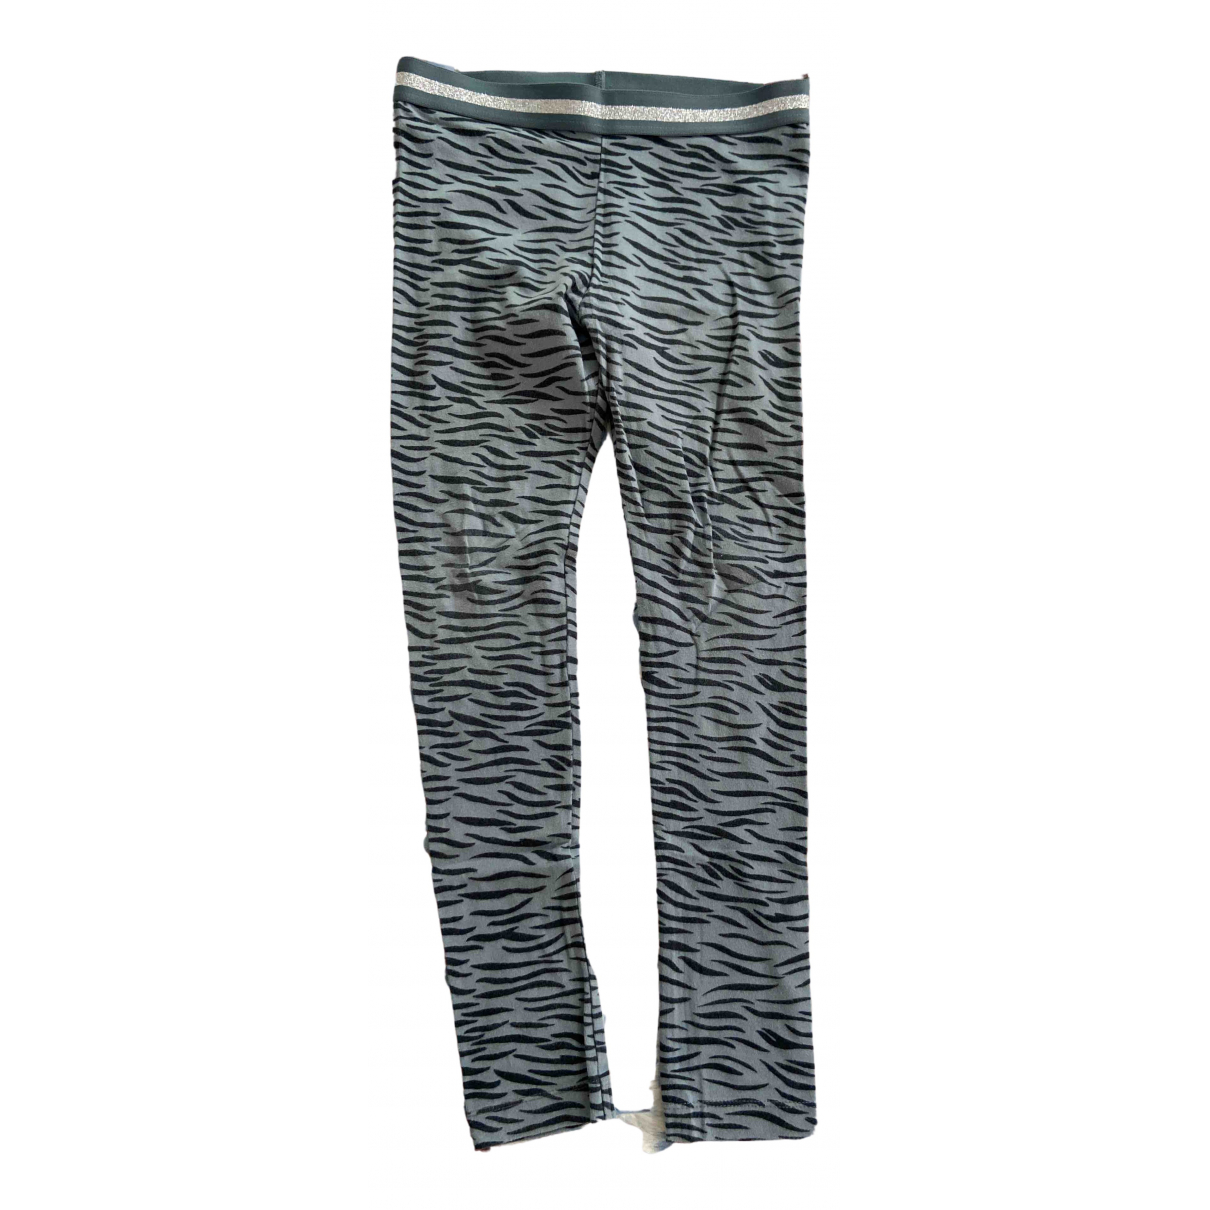 Stella Mccartney - Pantalon   pour enfant en coton - multicolore